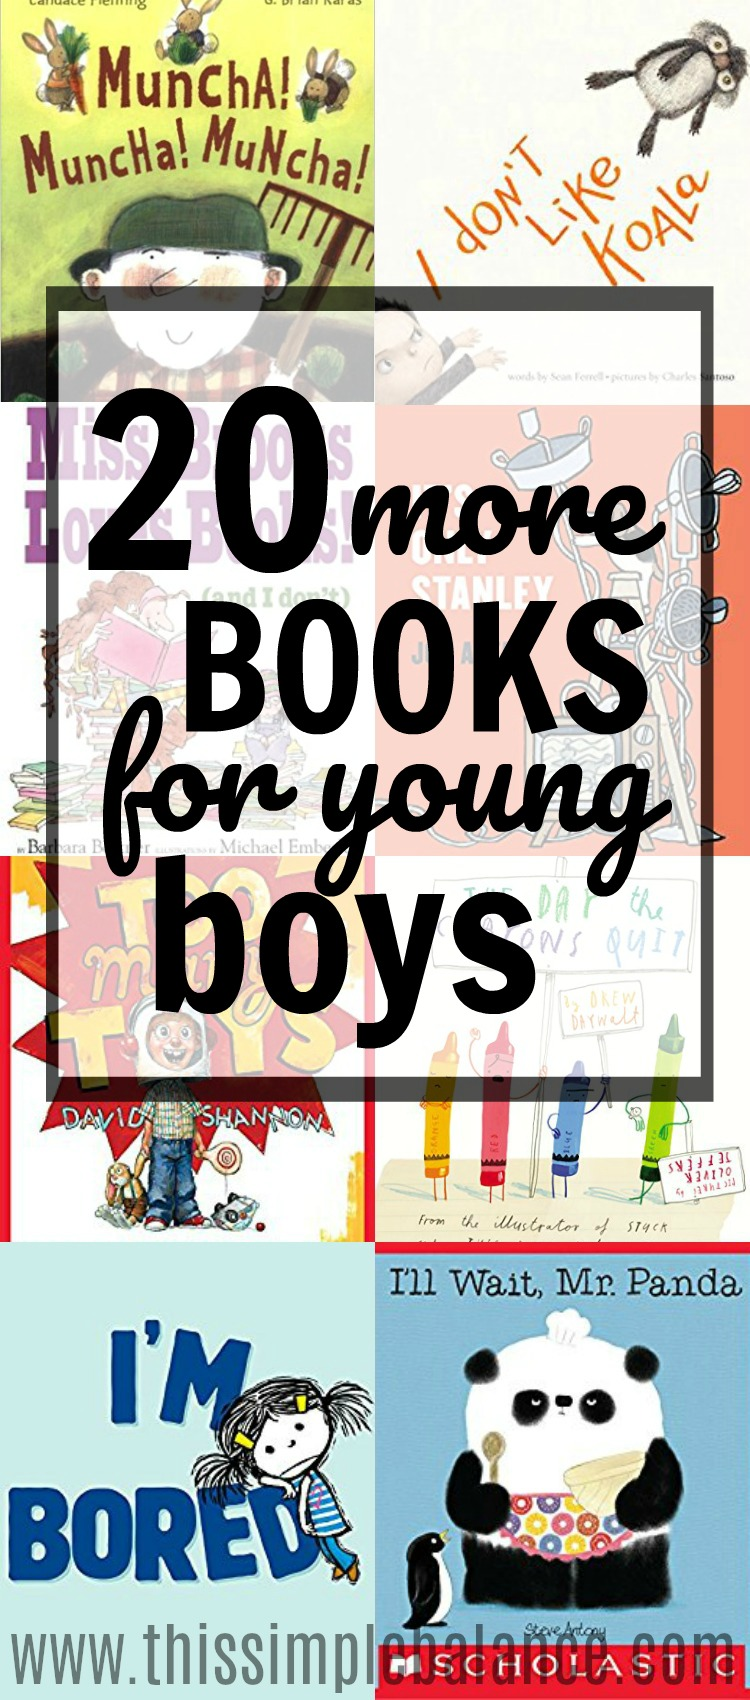 Looking for great books for boys? Finding the best picture books can be so frustrating! Try these: they made my boys laugh out loud!